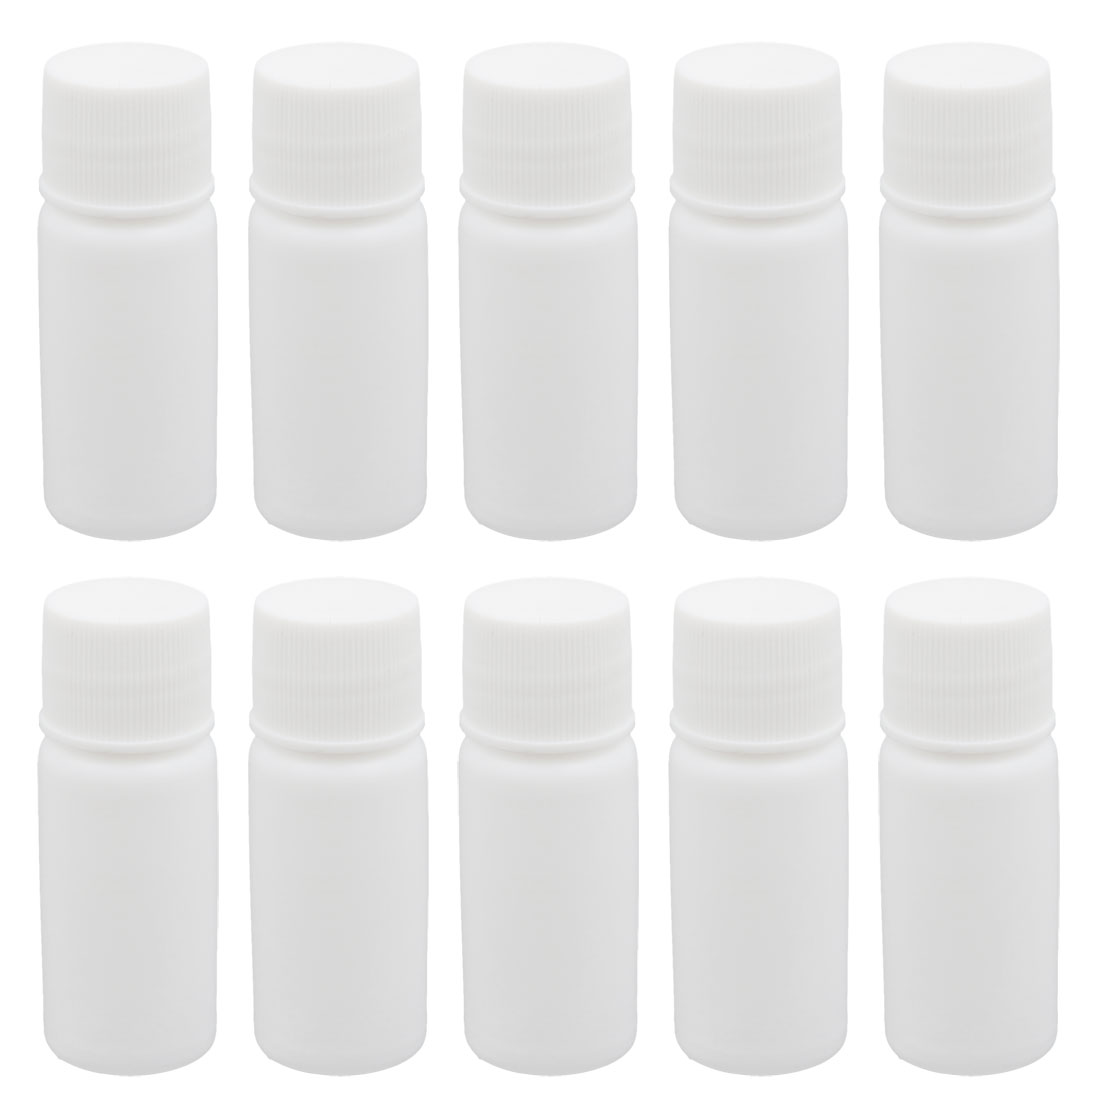 10pcs 0.3oz HDPE Plastic White Refillable Narrow Mouth Storage Bottle Jar